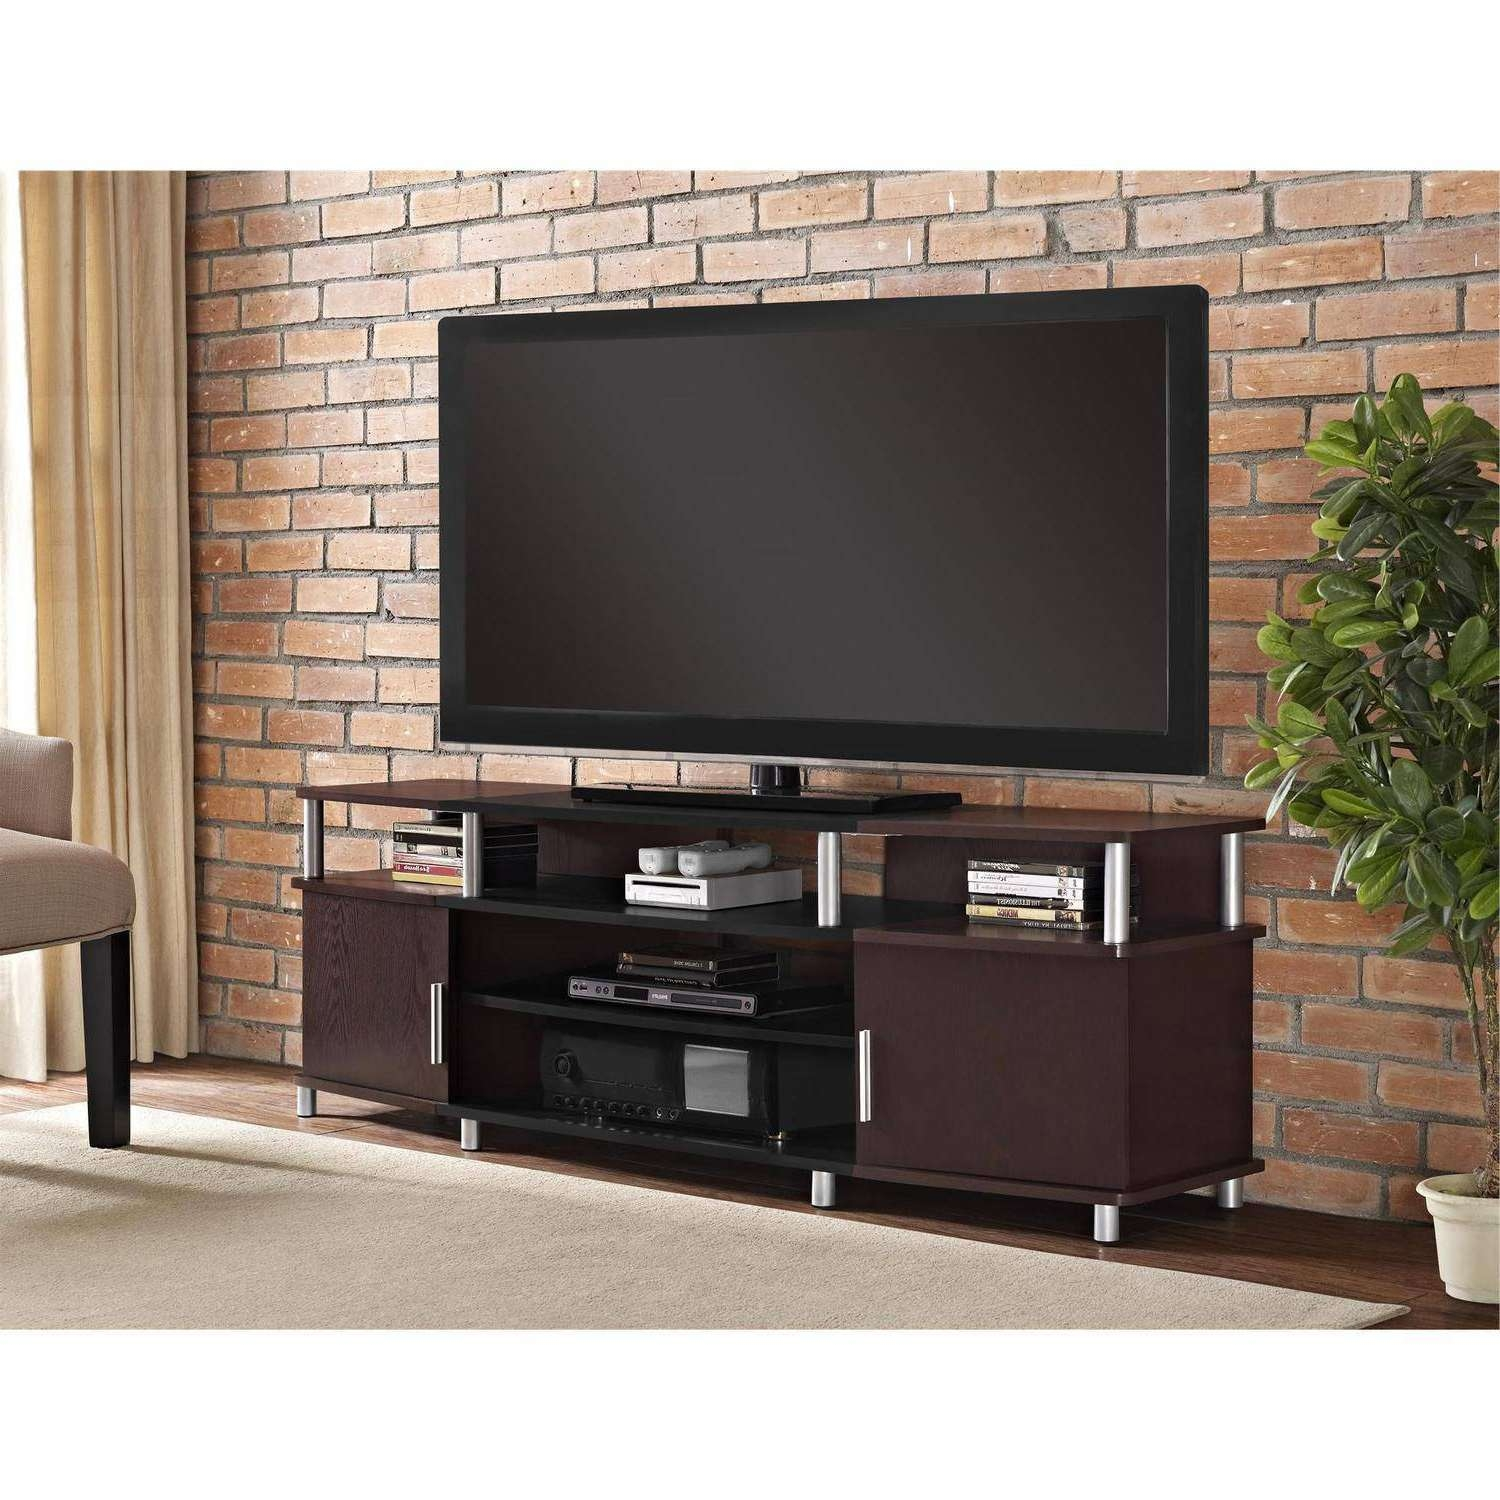 Bedroom Design : Amazing Long Tv Stand White Corner Tv Unit 60 With Corner 60 Inch Tv Stands (View 1 of 15)